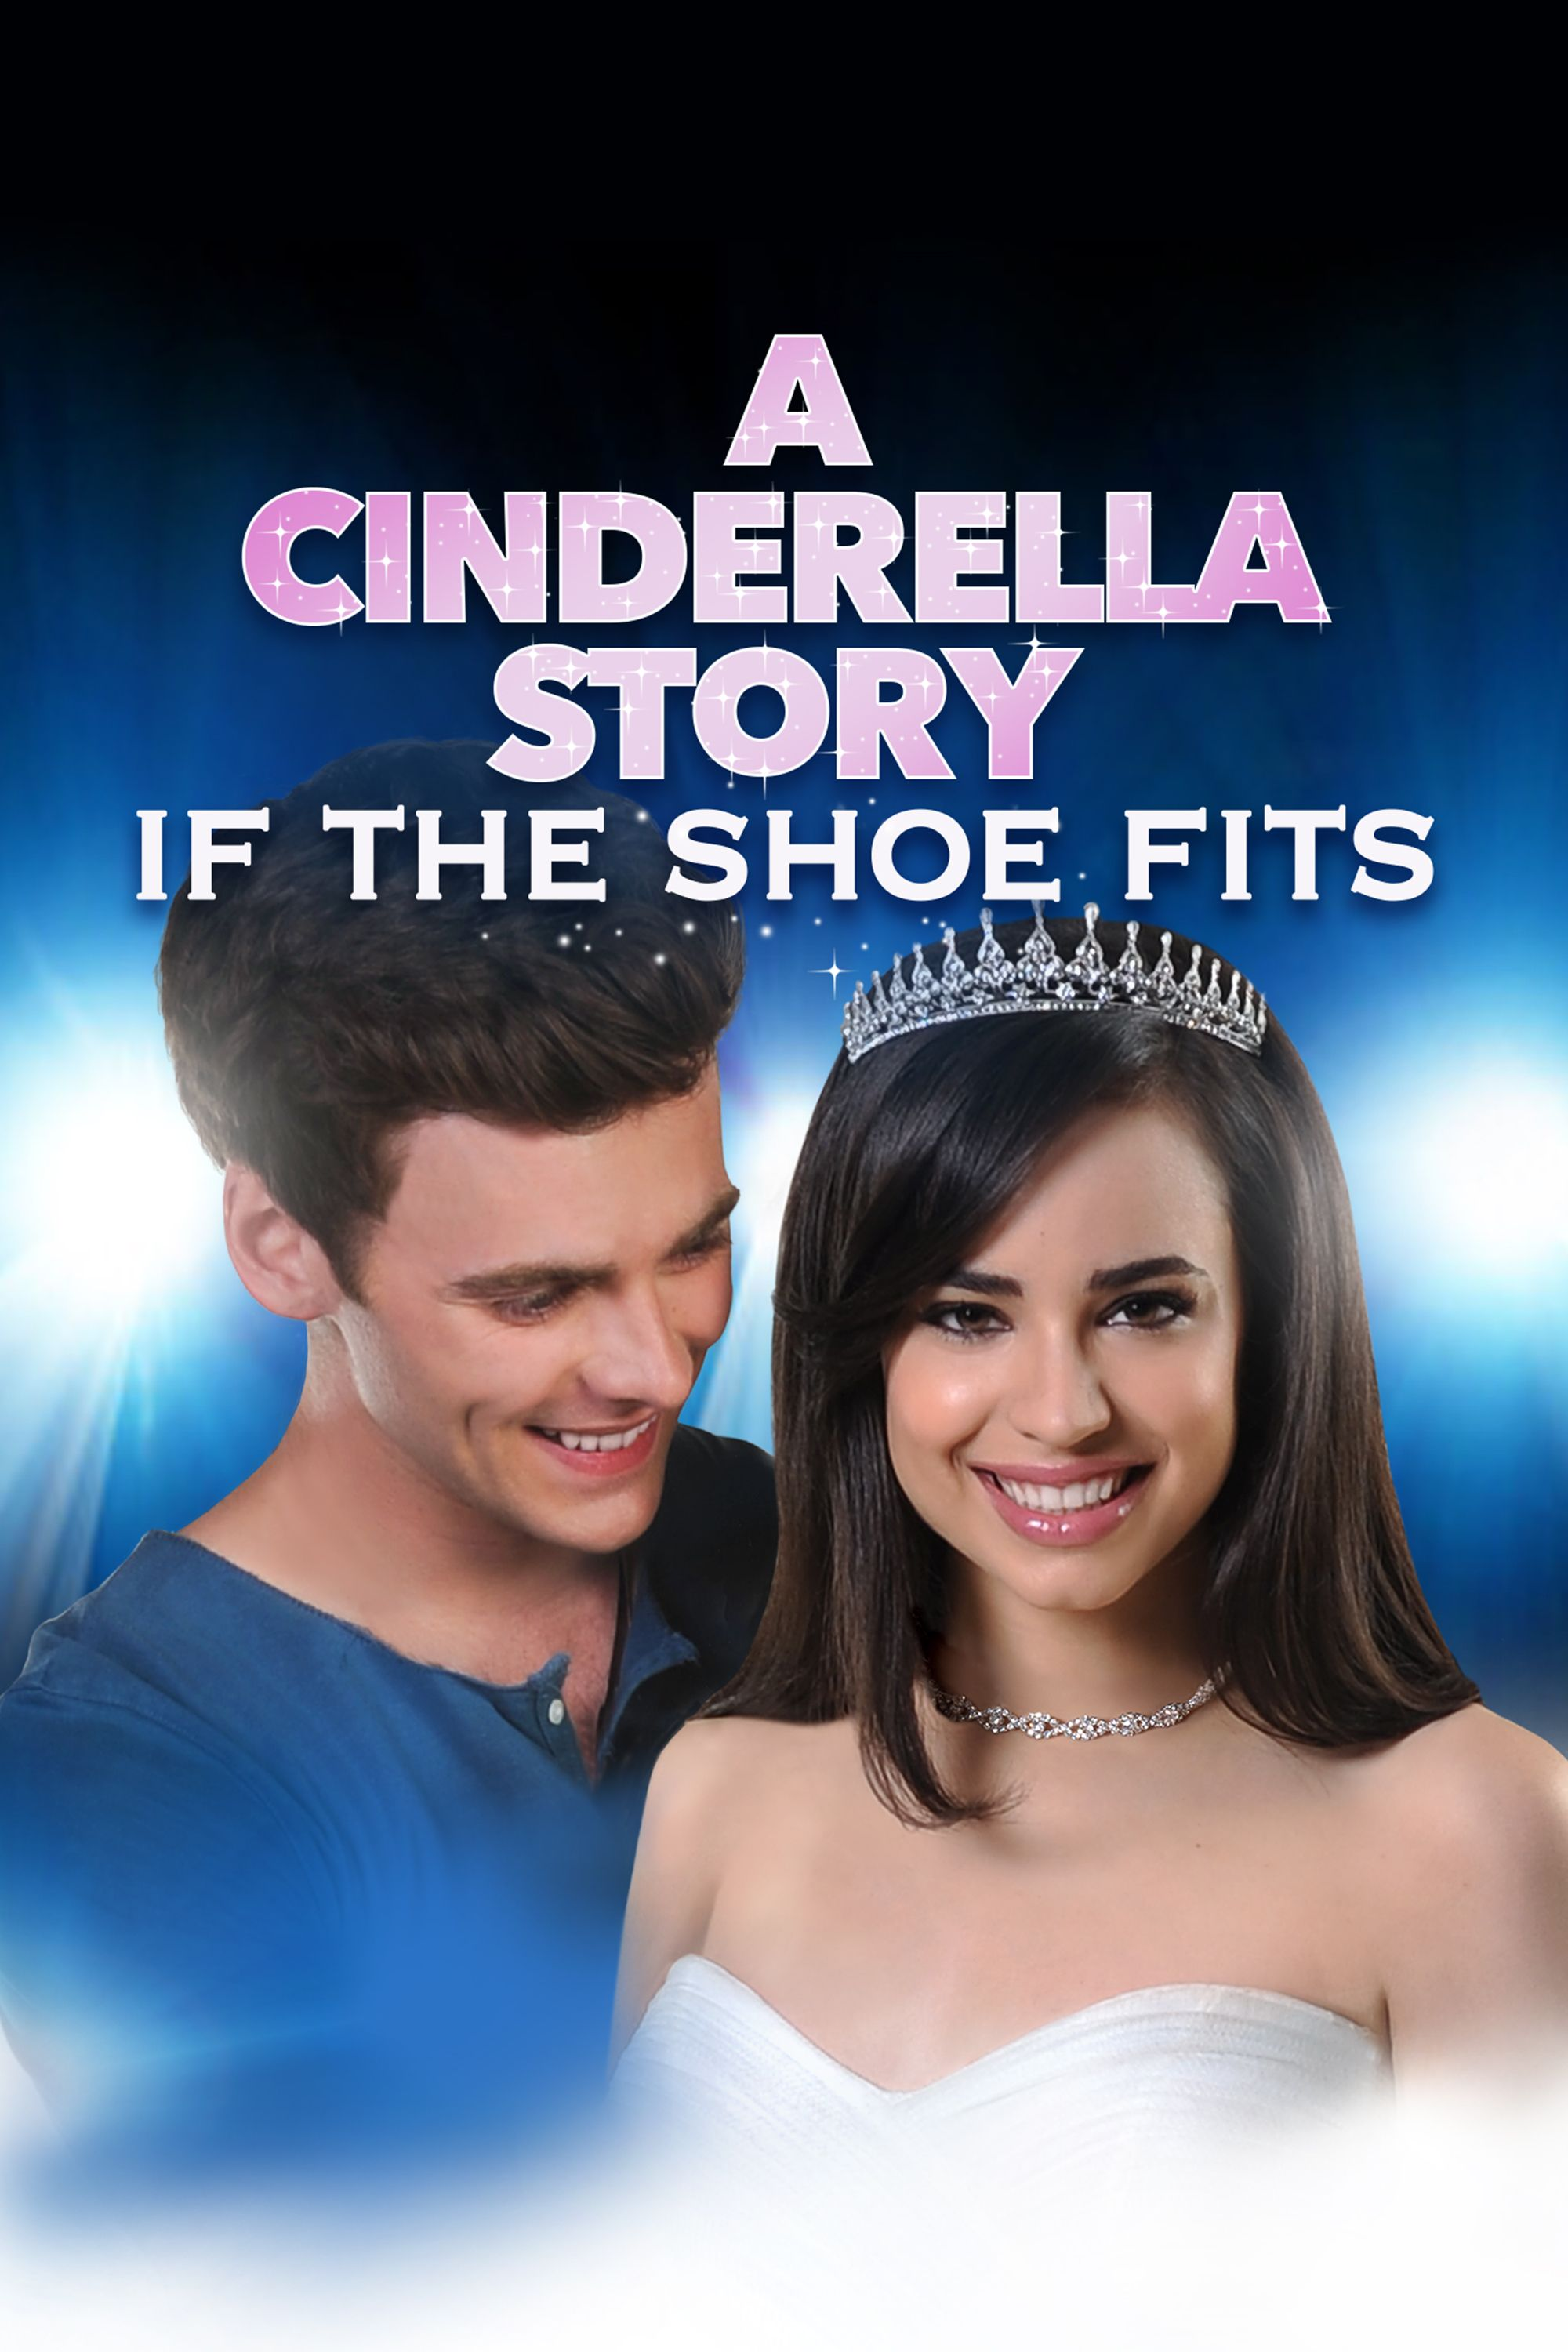 A Cinderella Story: If the Shoe Fits Movie Poster - Sofia ...